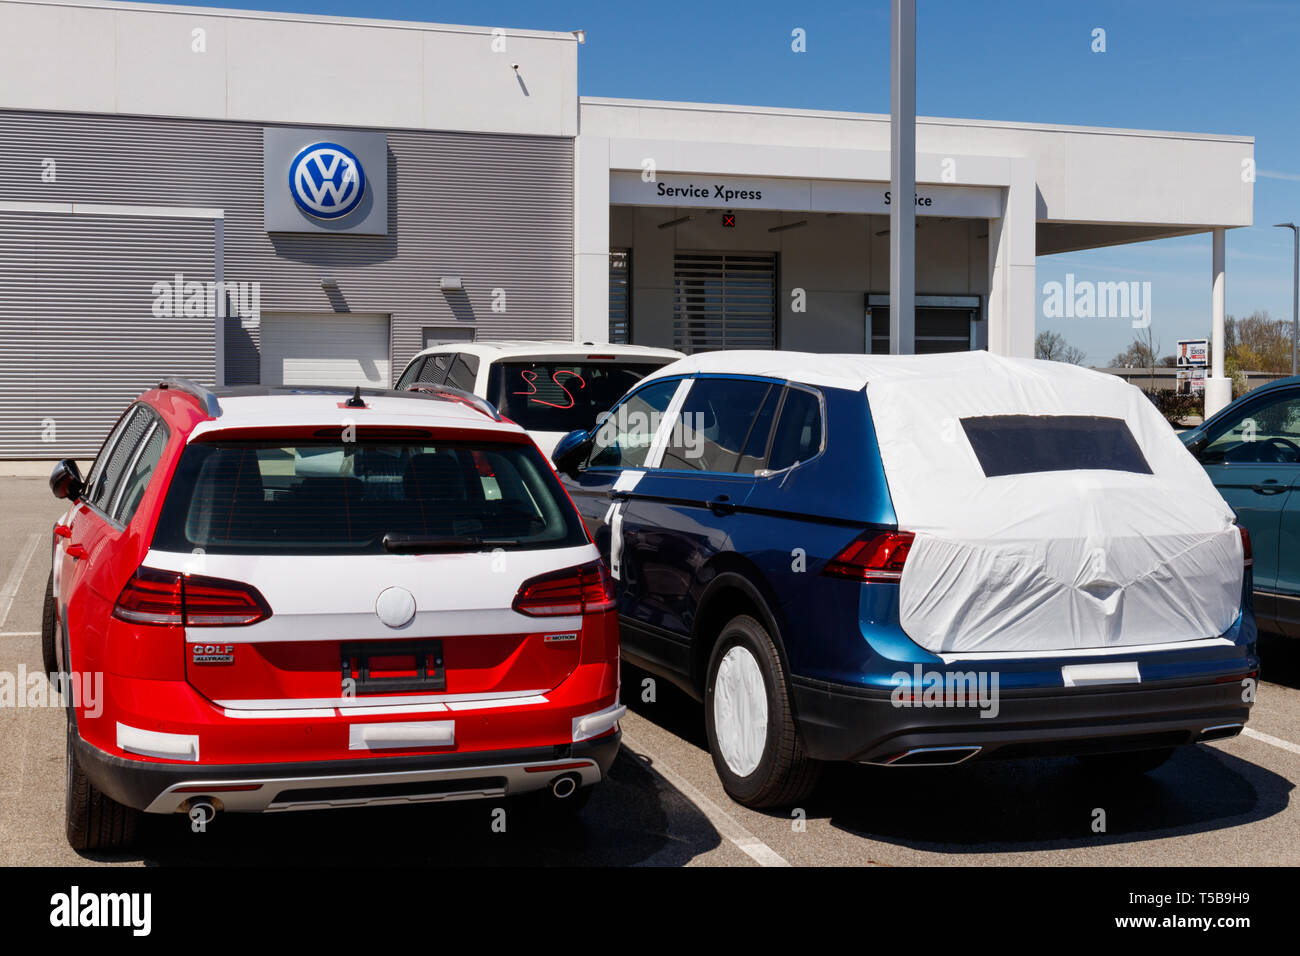 Noblesville - Circa April 2019: Volkswagen Cars and SUV Dealership. VW is Among the World's Largest Car Manufacturers IV - Stock Image